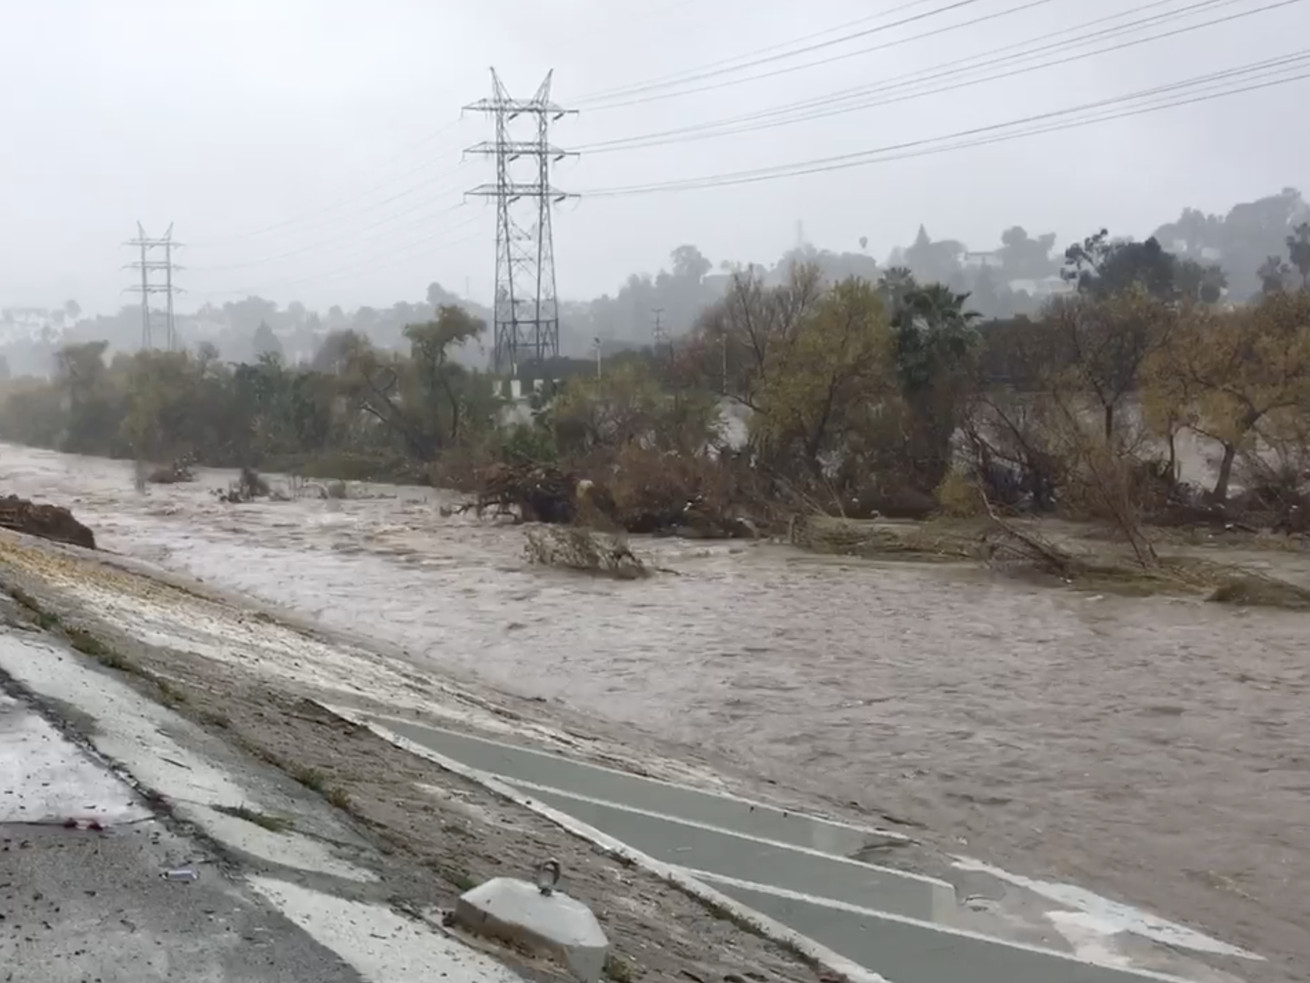 Screen grab of a video of the LA River during a rainstorm on January 17.